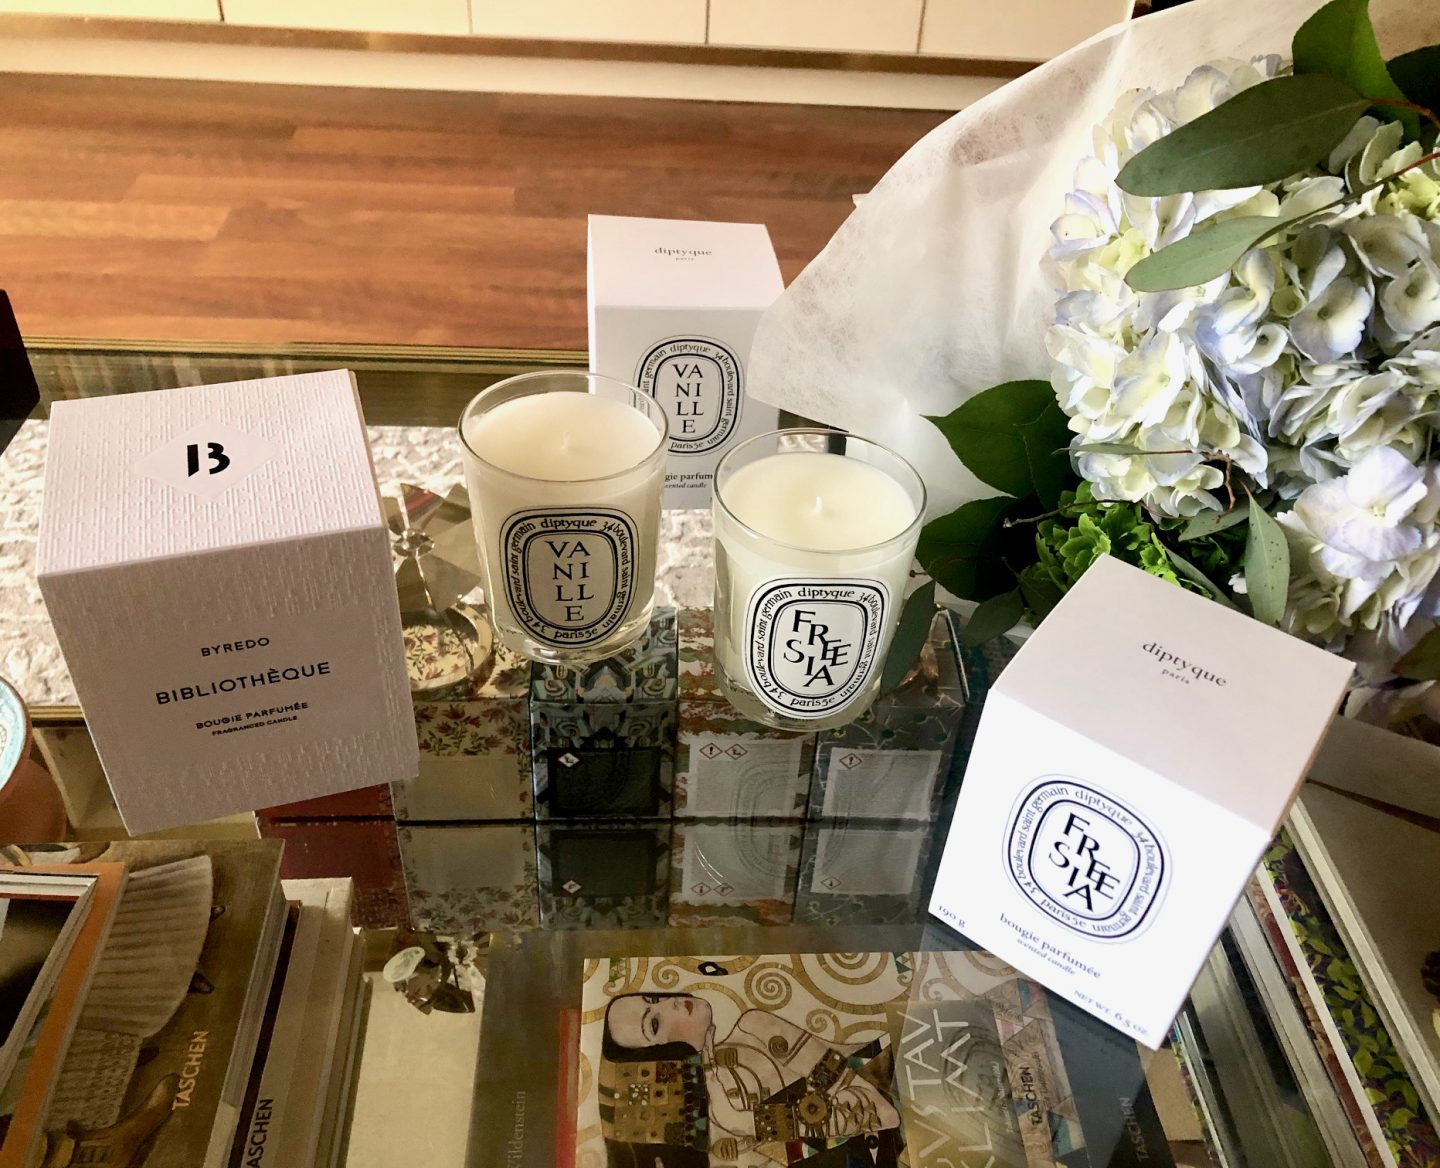 Spring Candles- Byredo Bibliothèque & Diptyque Vanille and Freesia